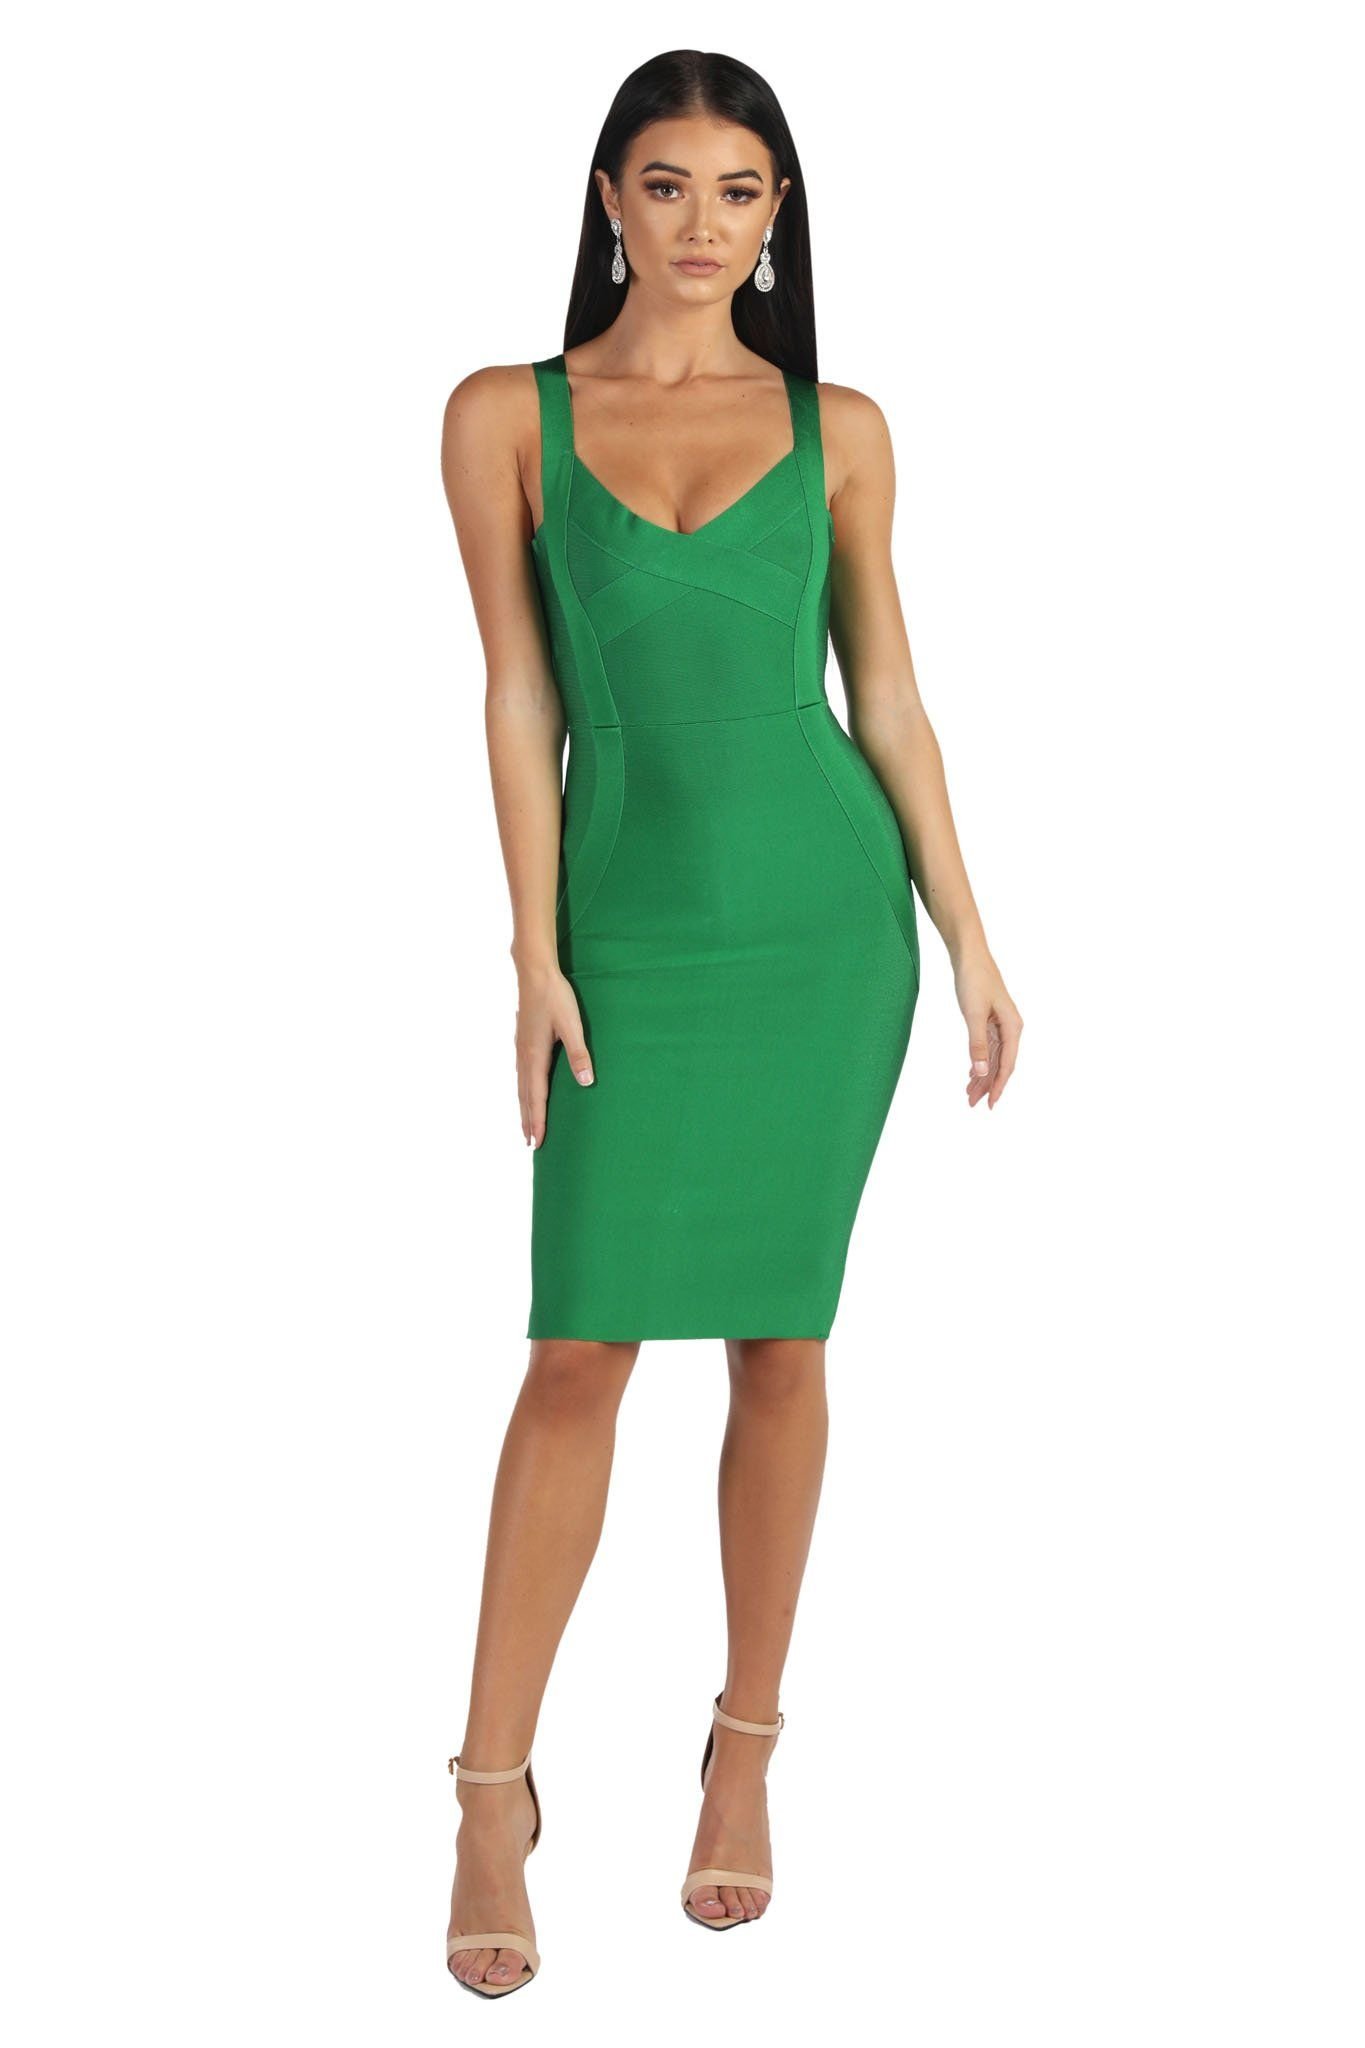 Green V Neck Sleeveless Midi Knee Length Bandage Dress with Shoulder Straps